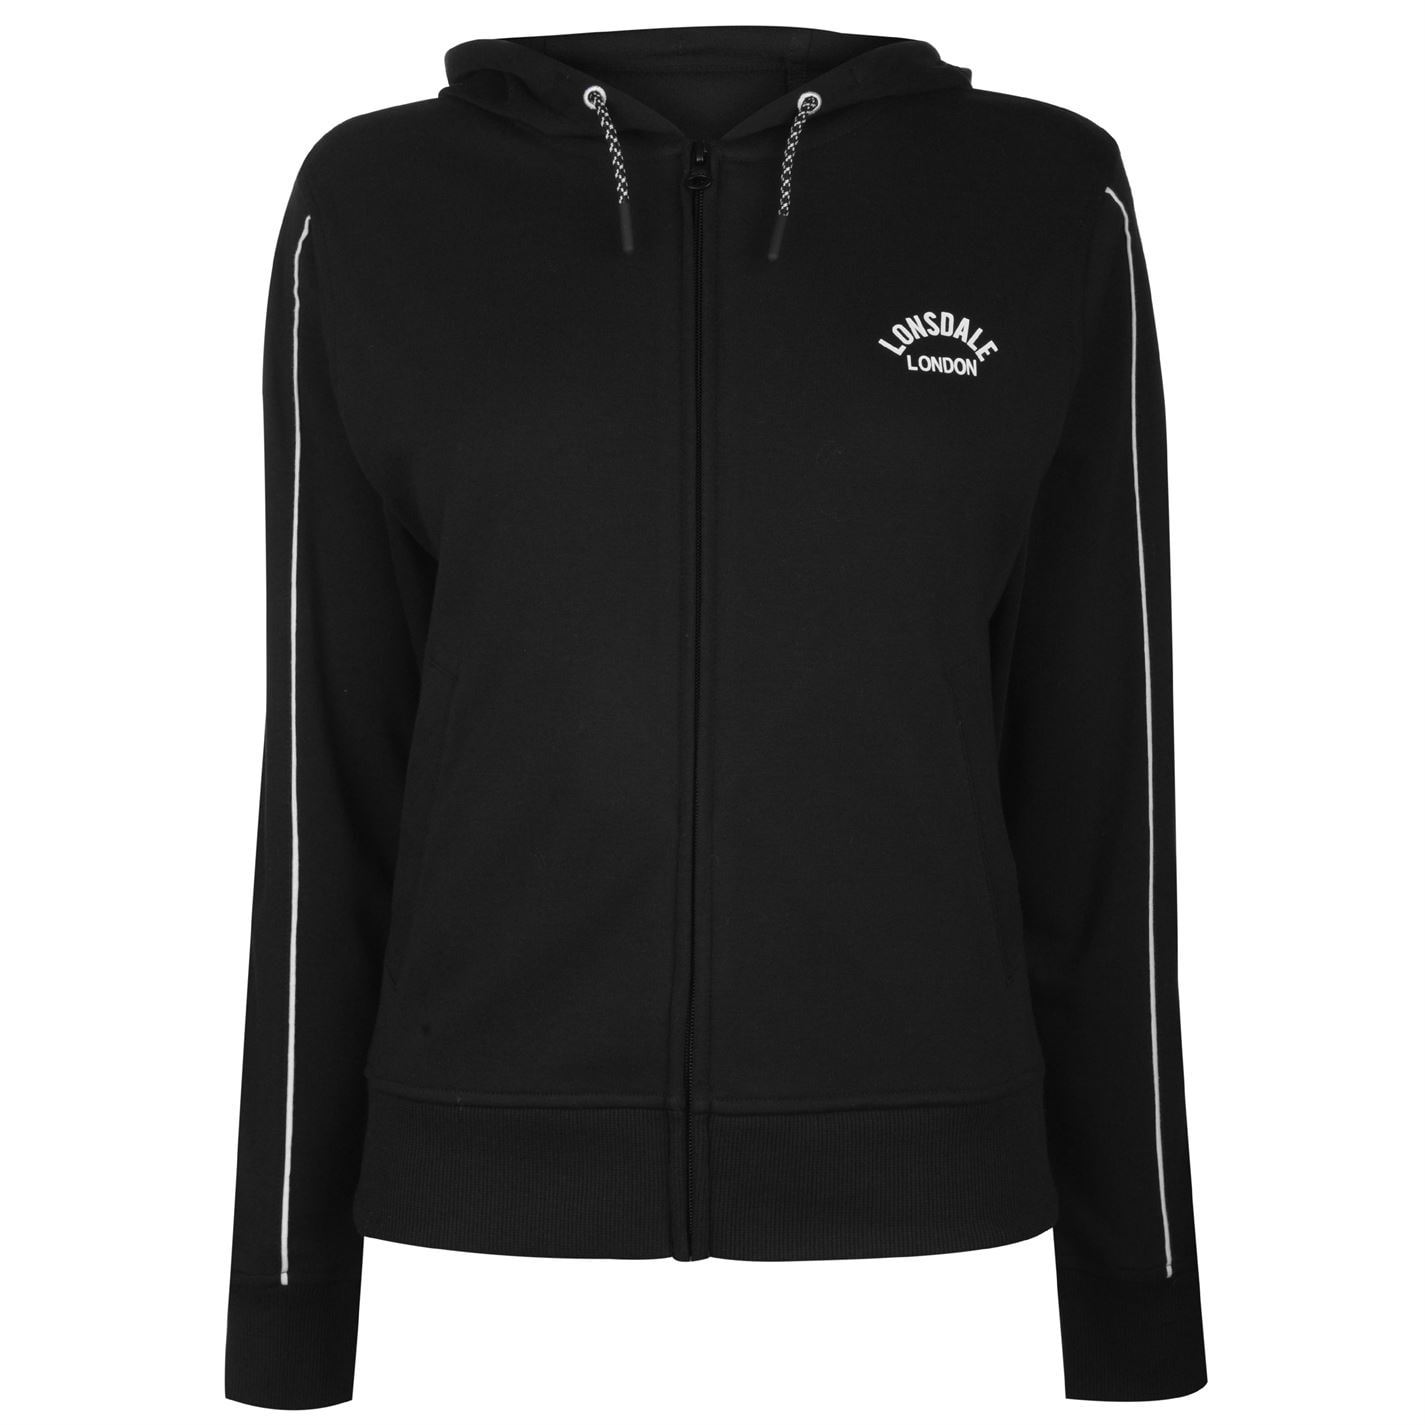 Ladies Adidas hoodie hoody in London for £2.50 for sale